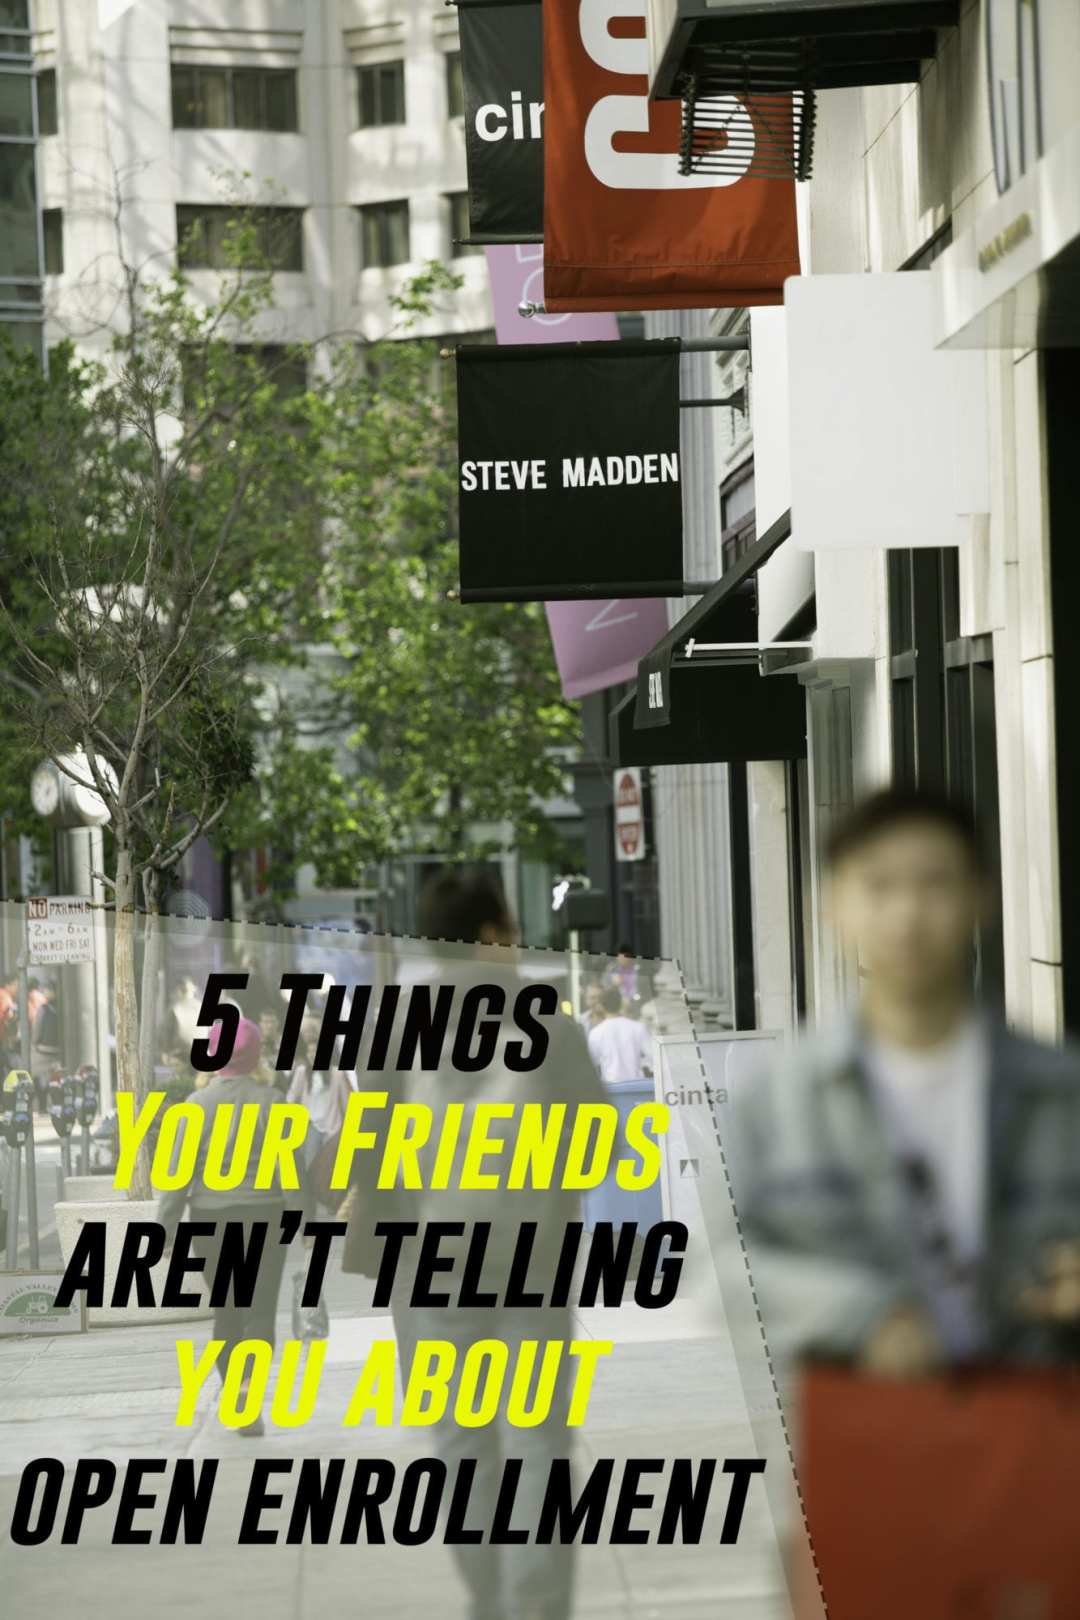 5 Things Your Friends Arent Telling You About Open Enrollment